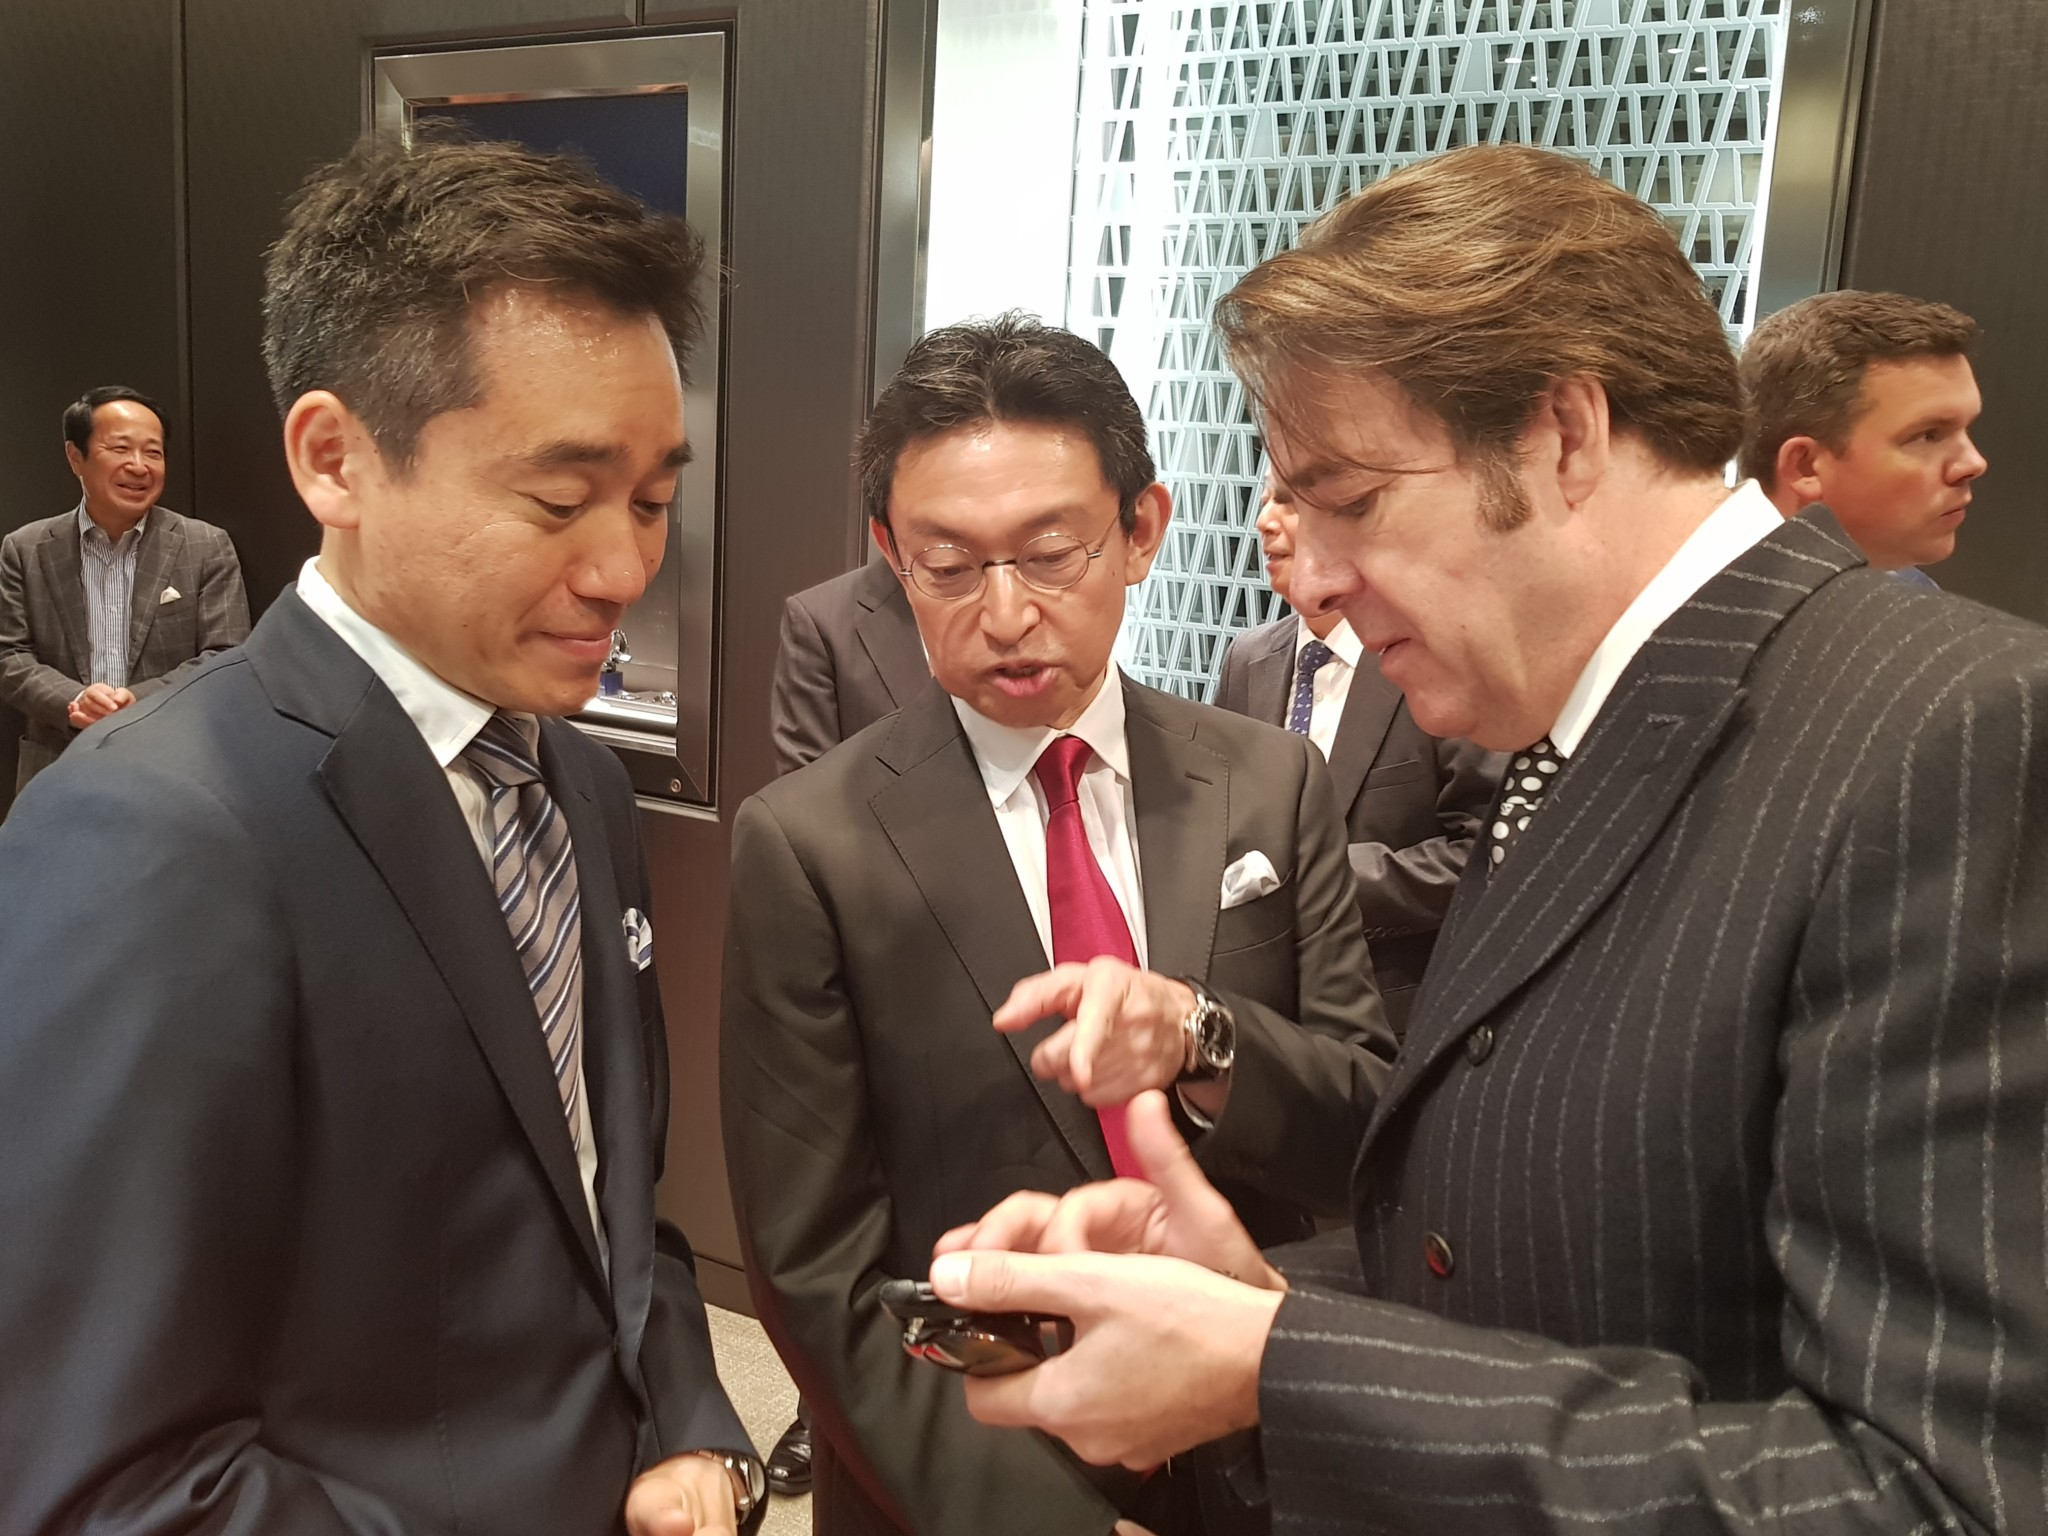 Kinya Iwami left) discuses Japanese culture with TV personality Jonathan Ross right).